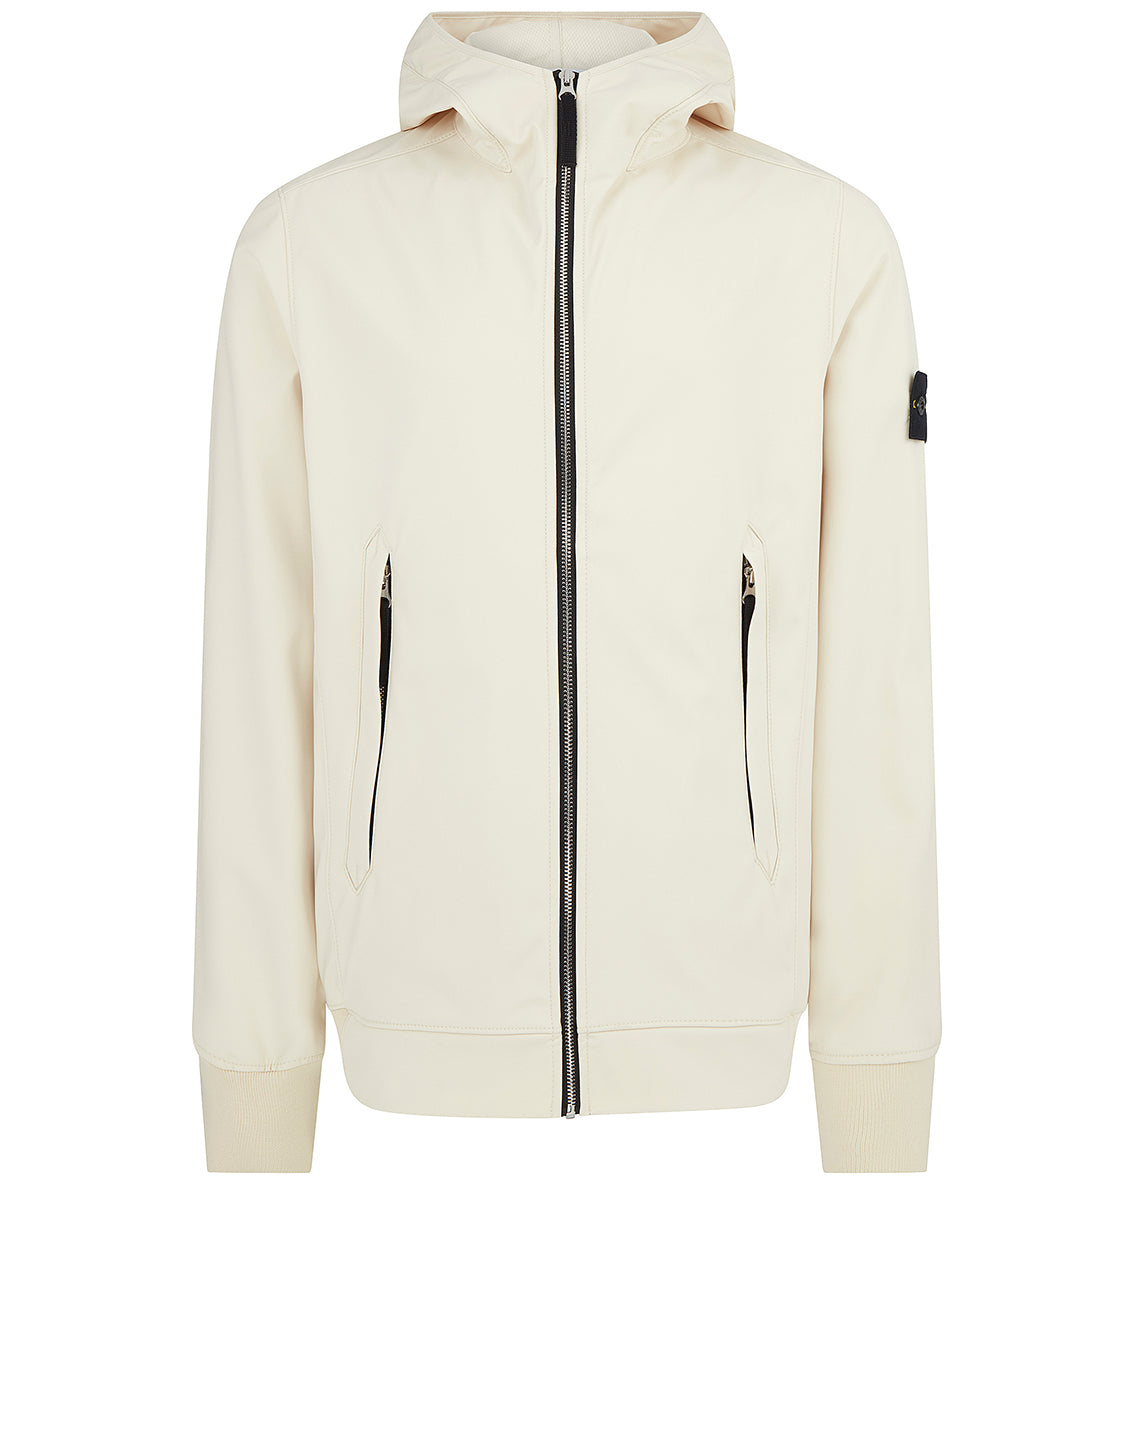 40927 LIGHT SOFT SHELL-R Jacket in Beige